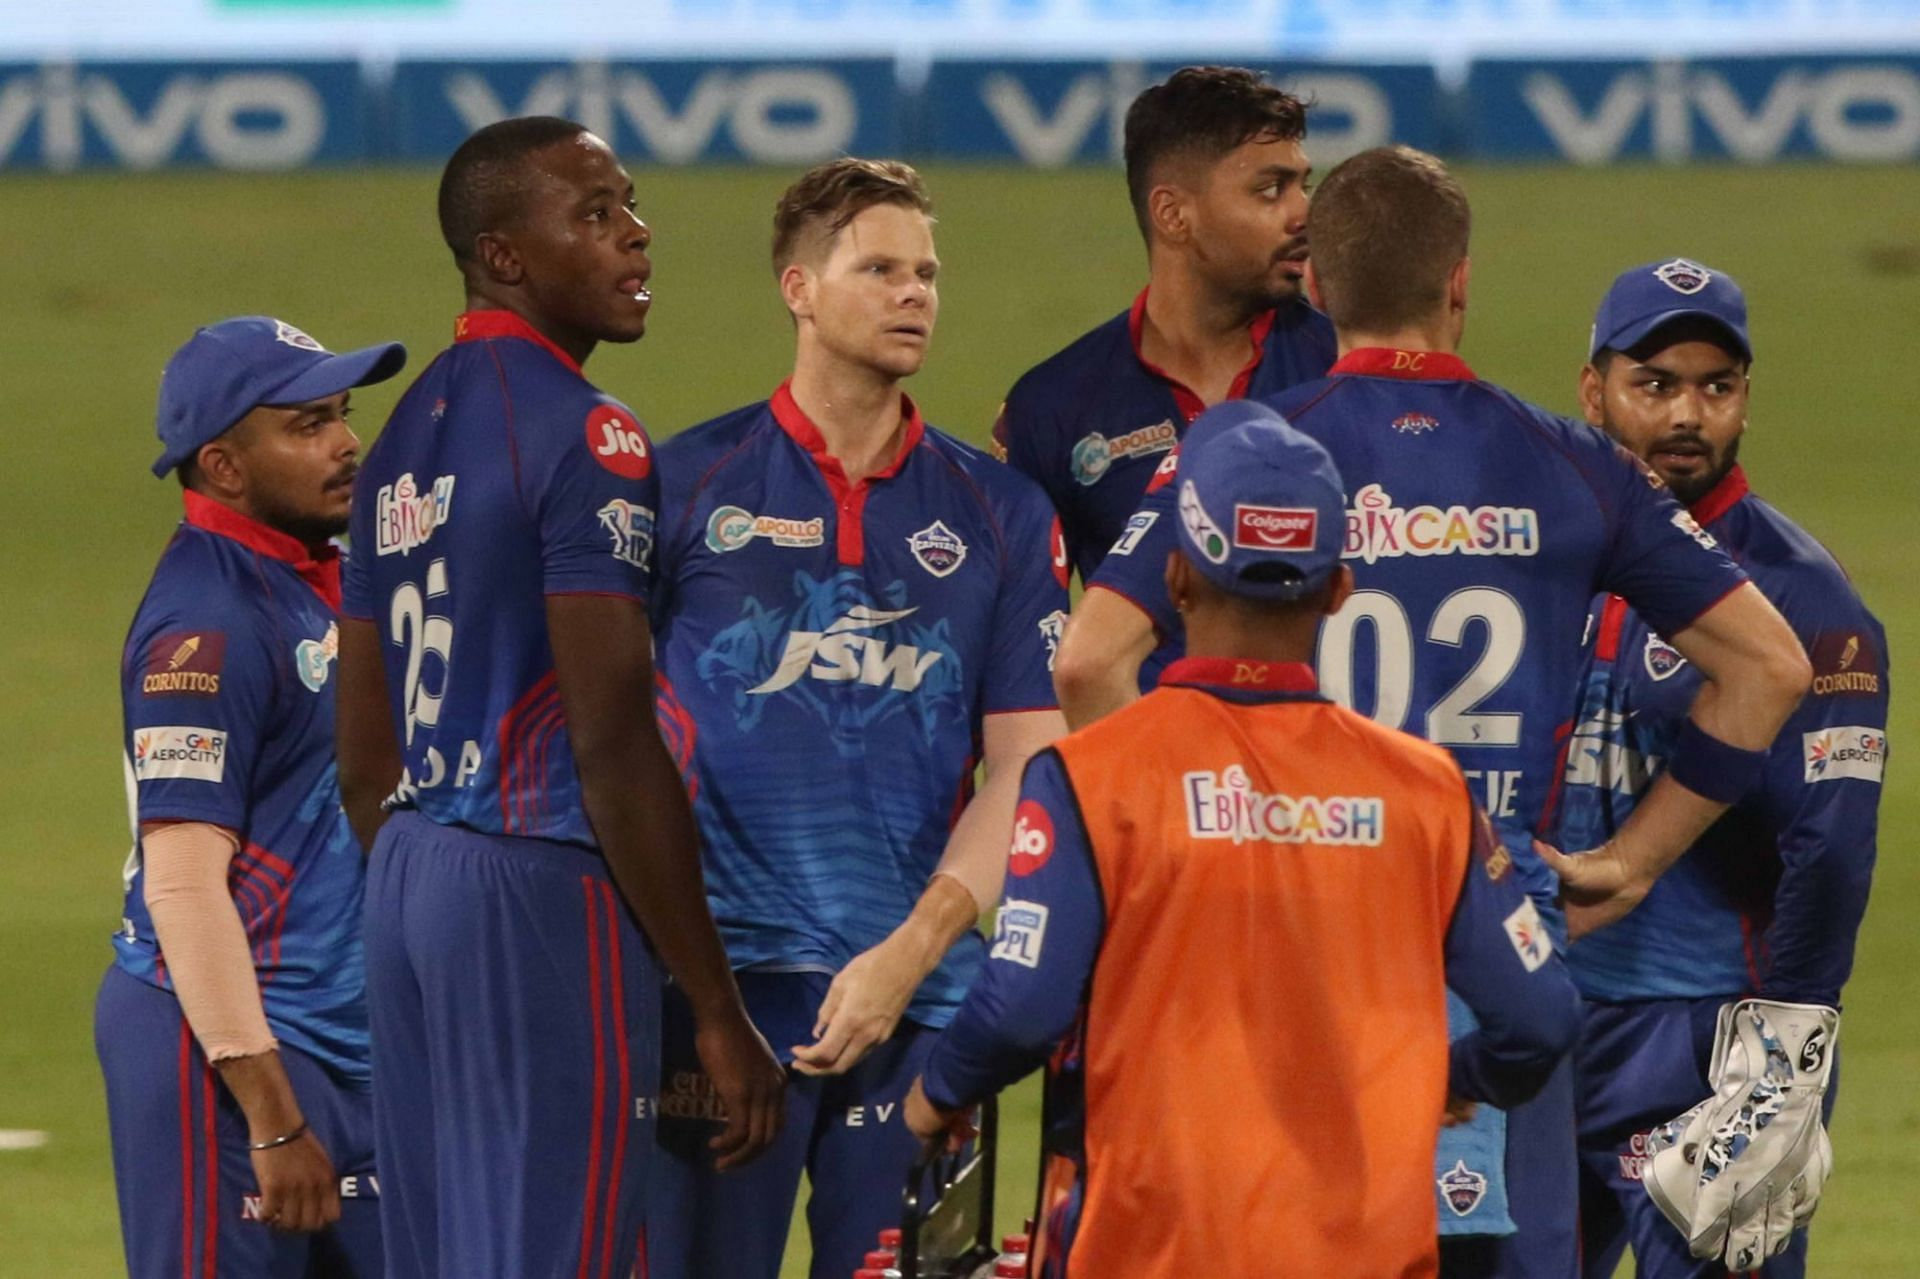 Delhi Capitals crashed out of IPL after their defeat in Qualifier 2.